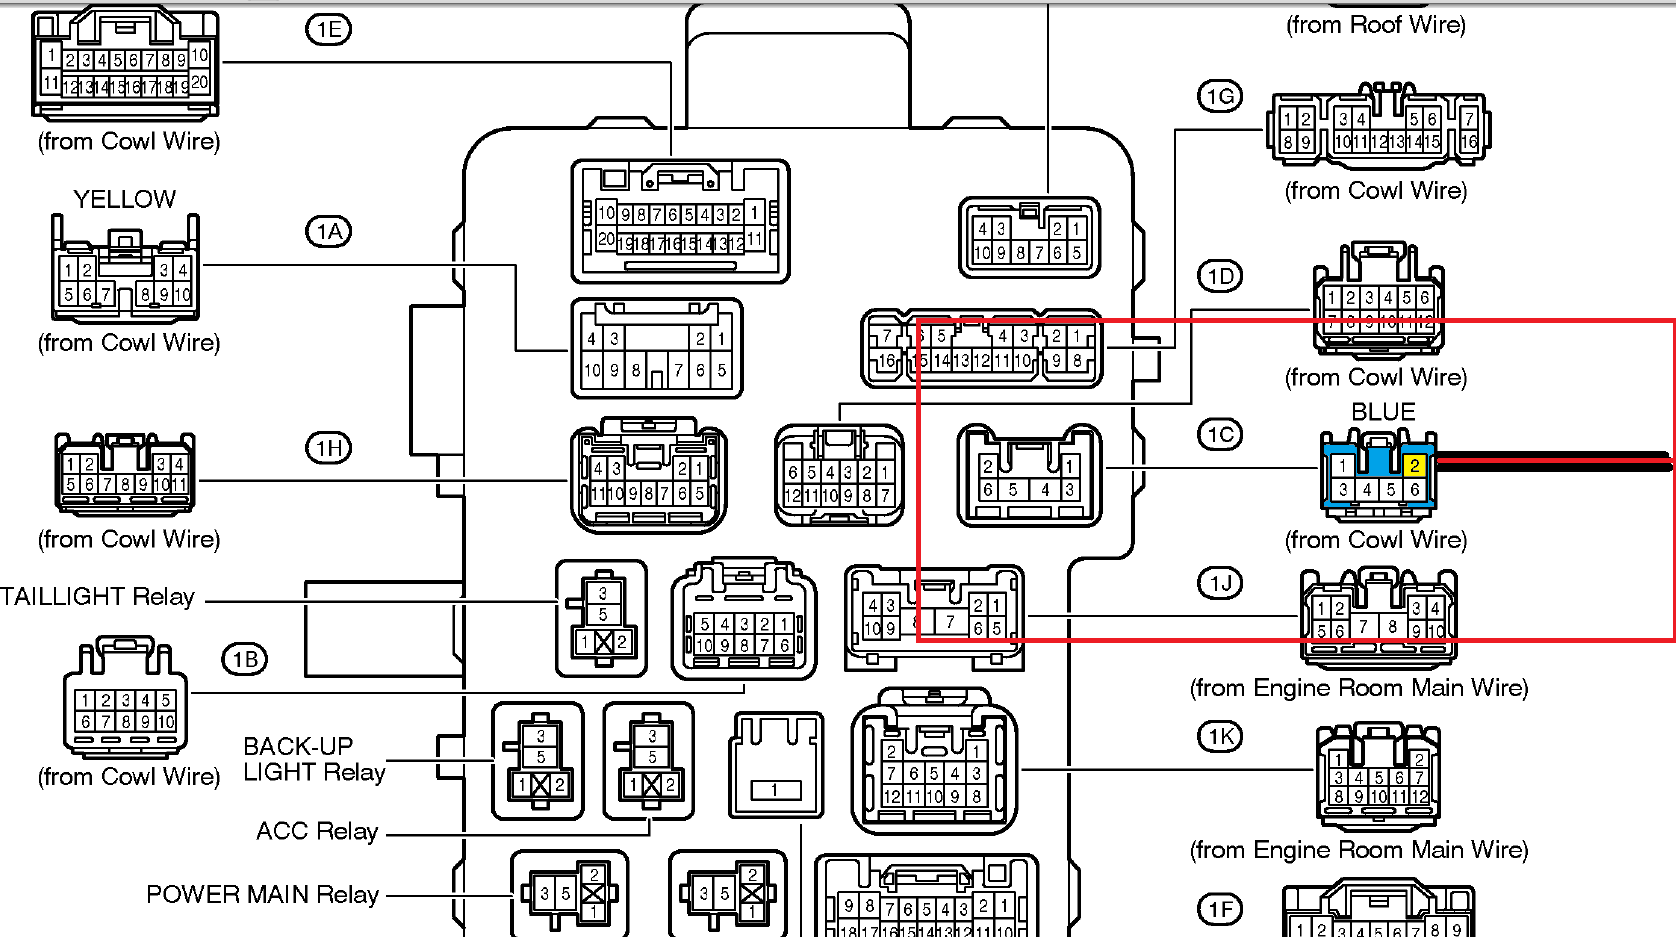 [DIAGRAM_0HG]  24C4 Toyota Sequoia 2002 Fuse Panel Diagram | Wiring Library | 2007 Sequoia Fuse Box |  | Wiring Library